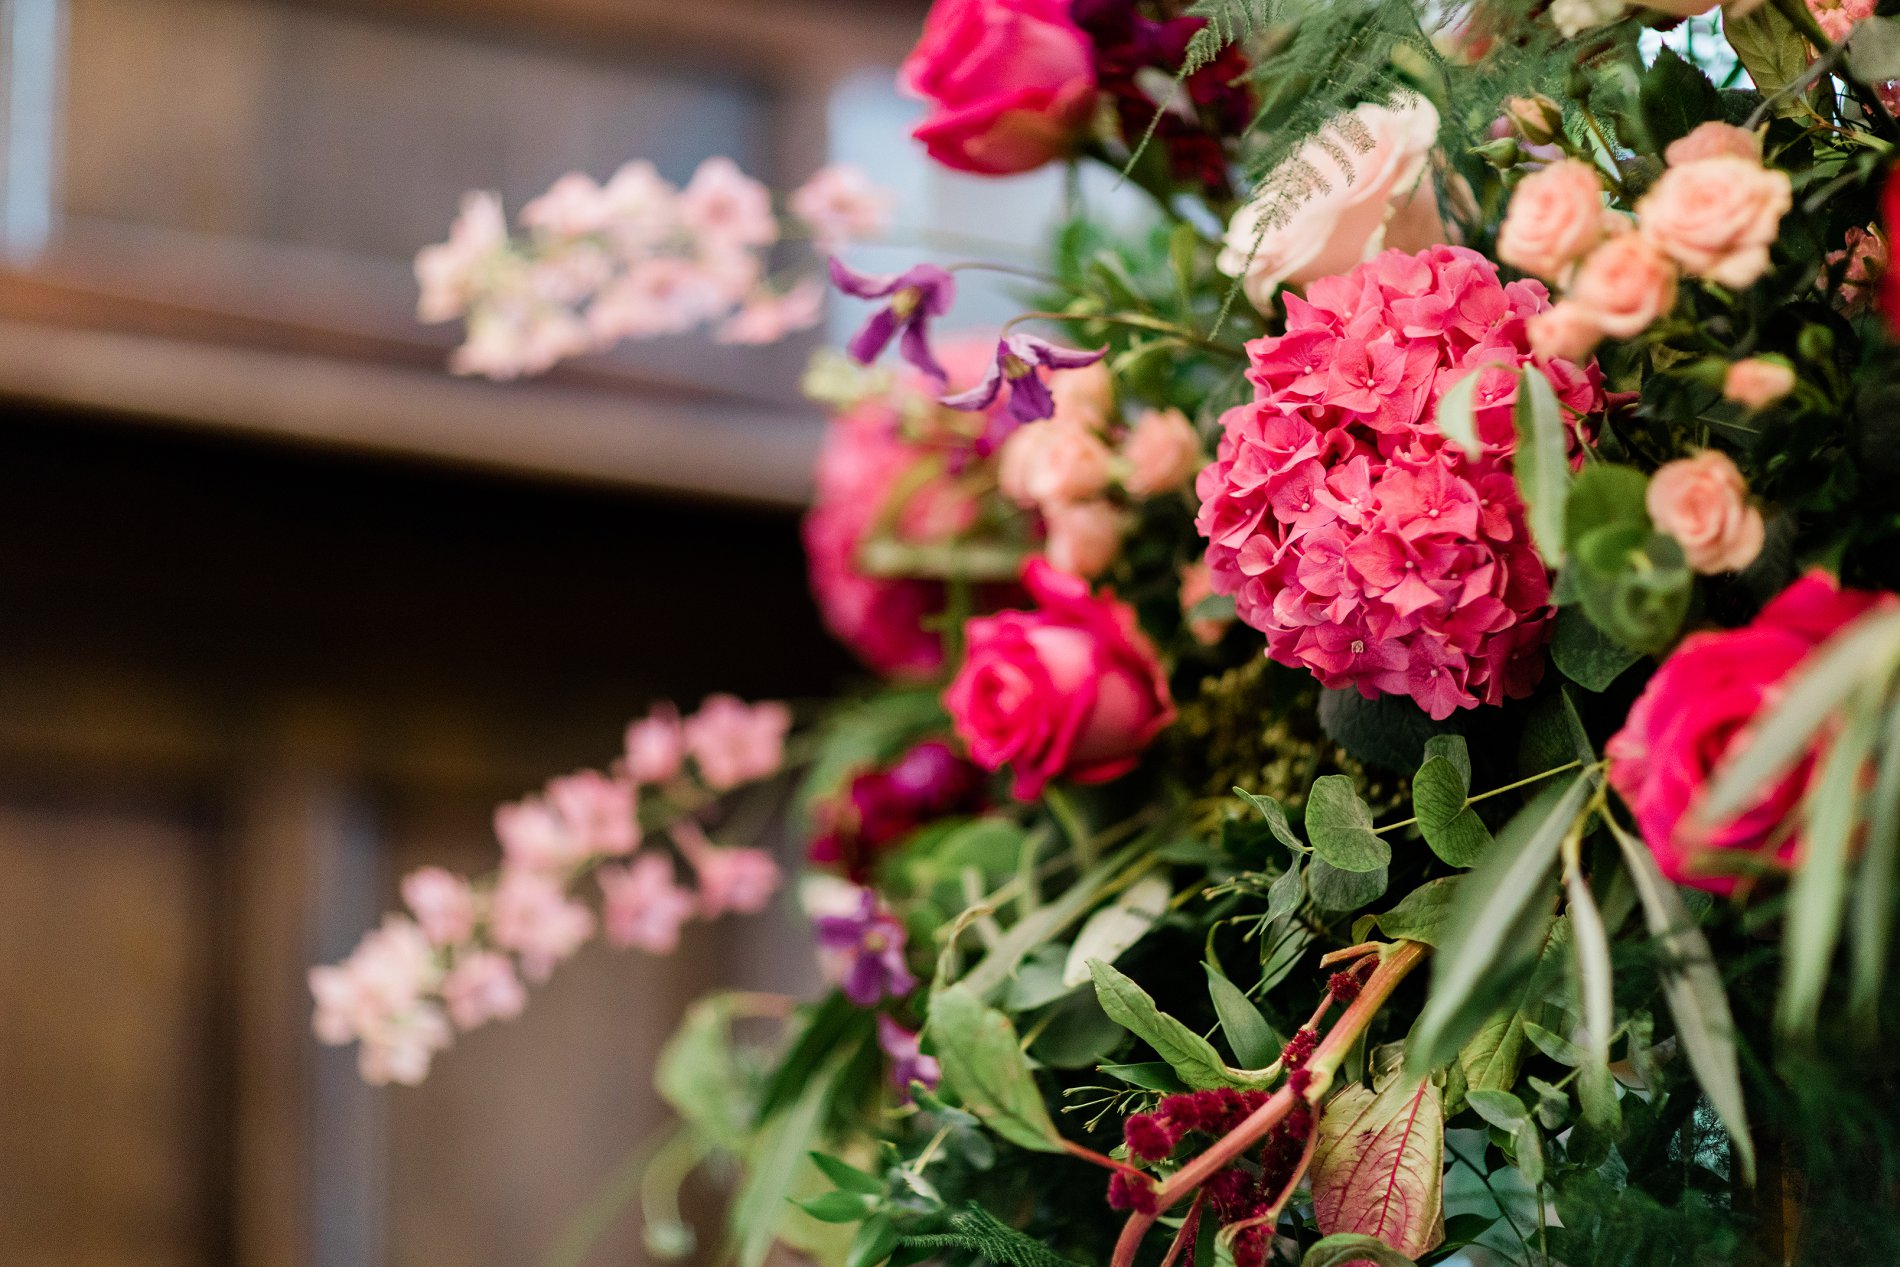 Forever Yours Styled Shoot (c) Camilla J. Hards and Courtney Dee Photography (15)